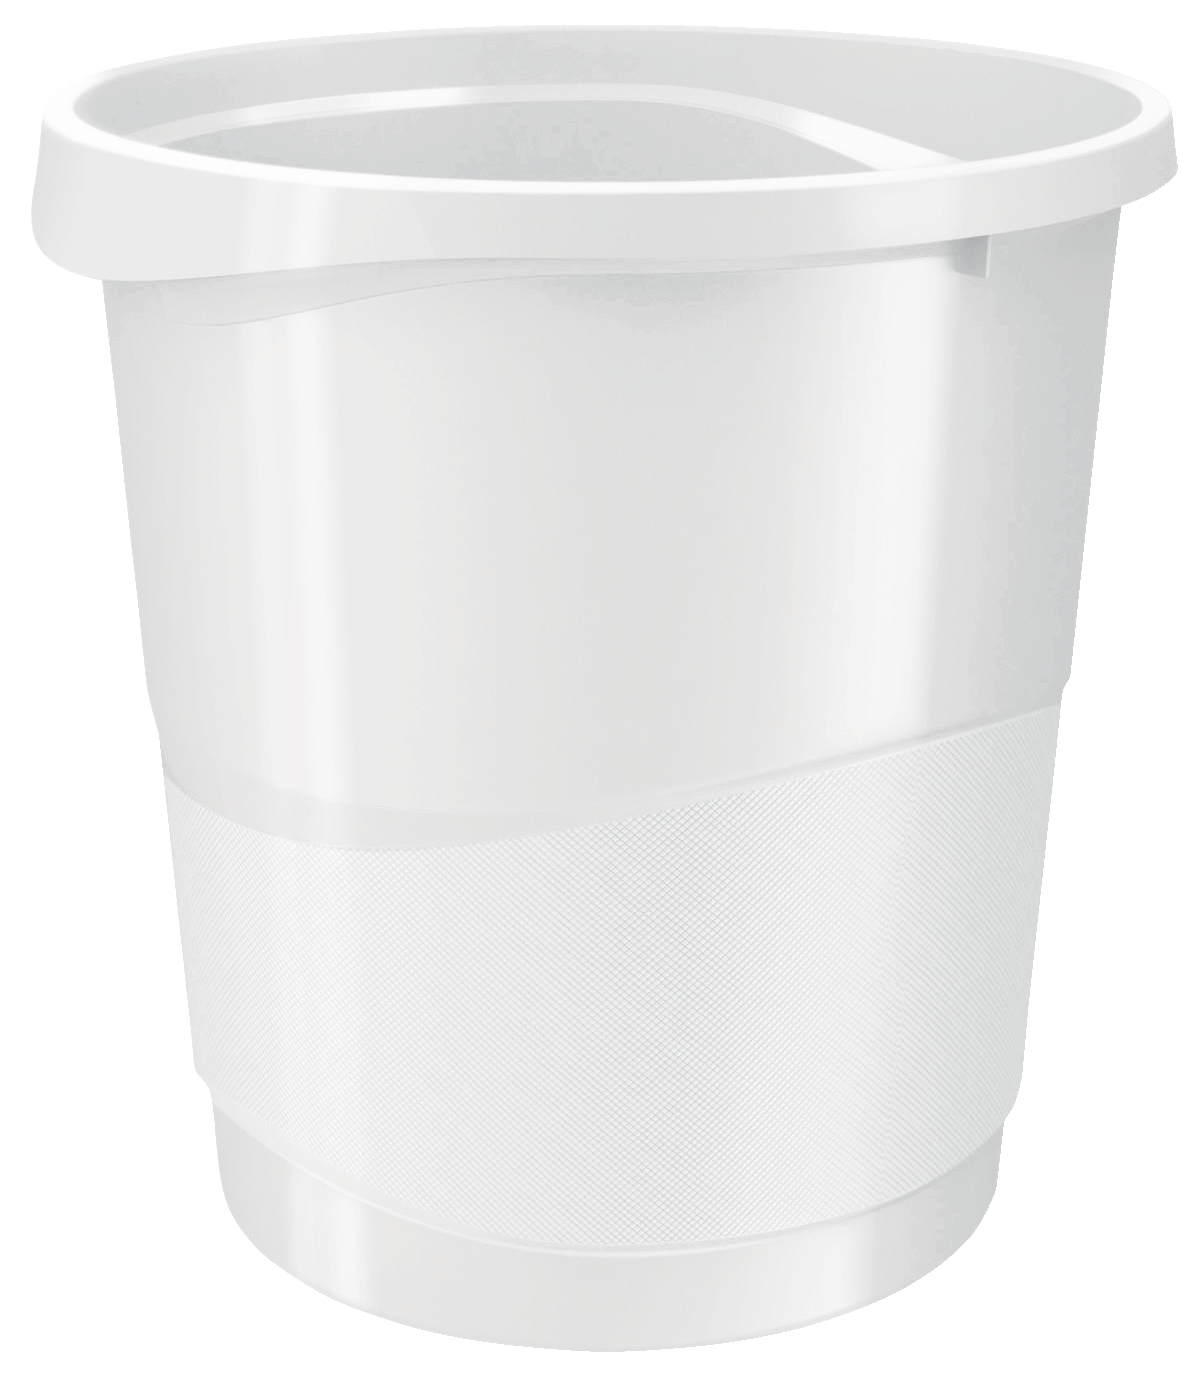 Rexel Choices Waste Bin White